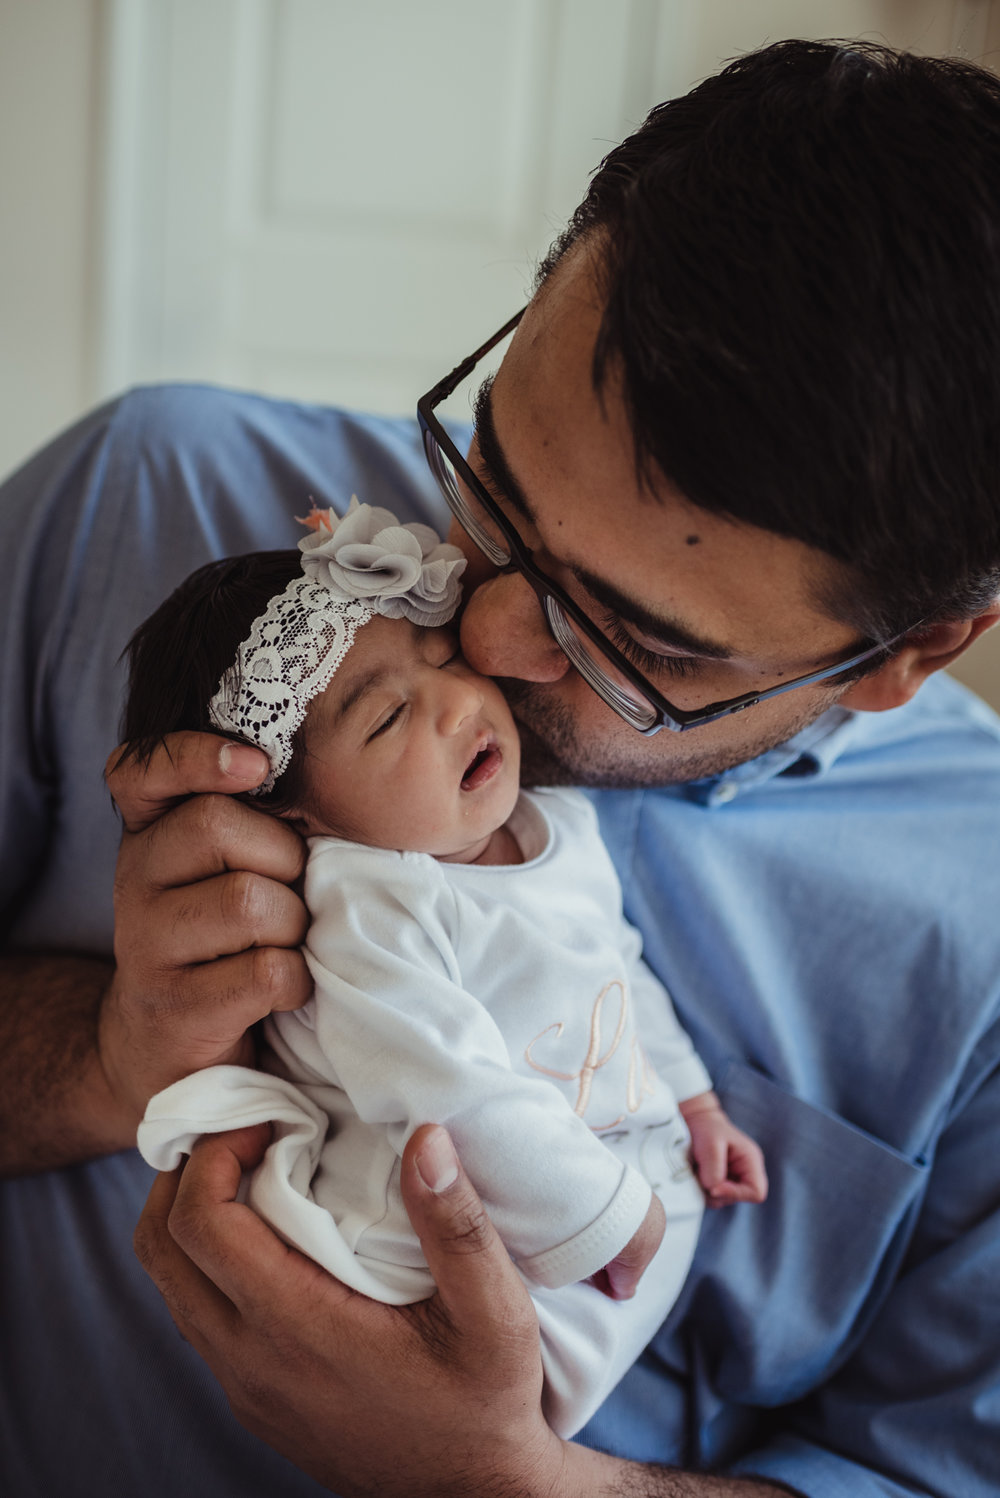 Dad kisses his newborn girl during their lifestyle newborn session with Rose Trail Images in Raleigh, North Carolina.